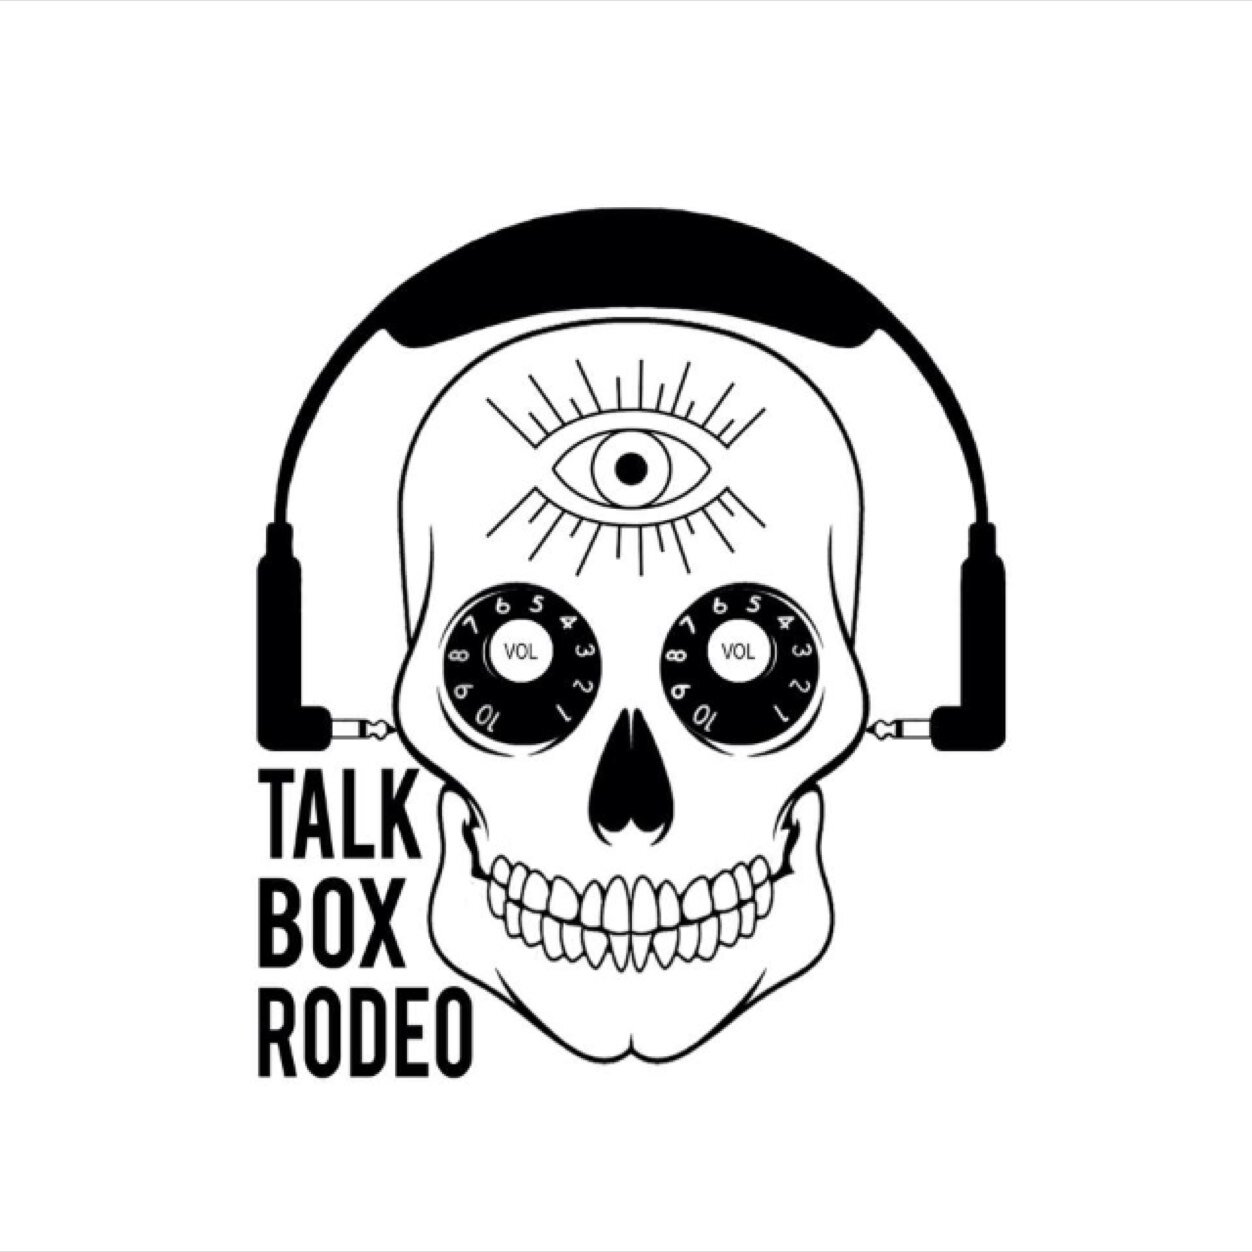 Talk Box Rodeo Talkboxrodeo